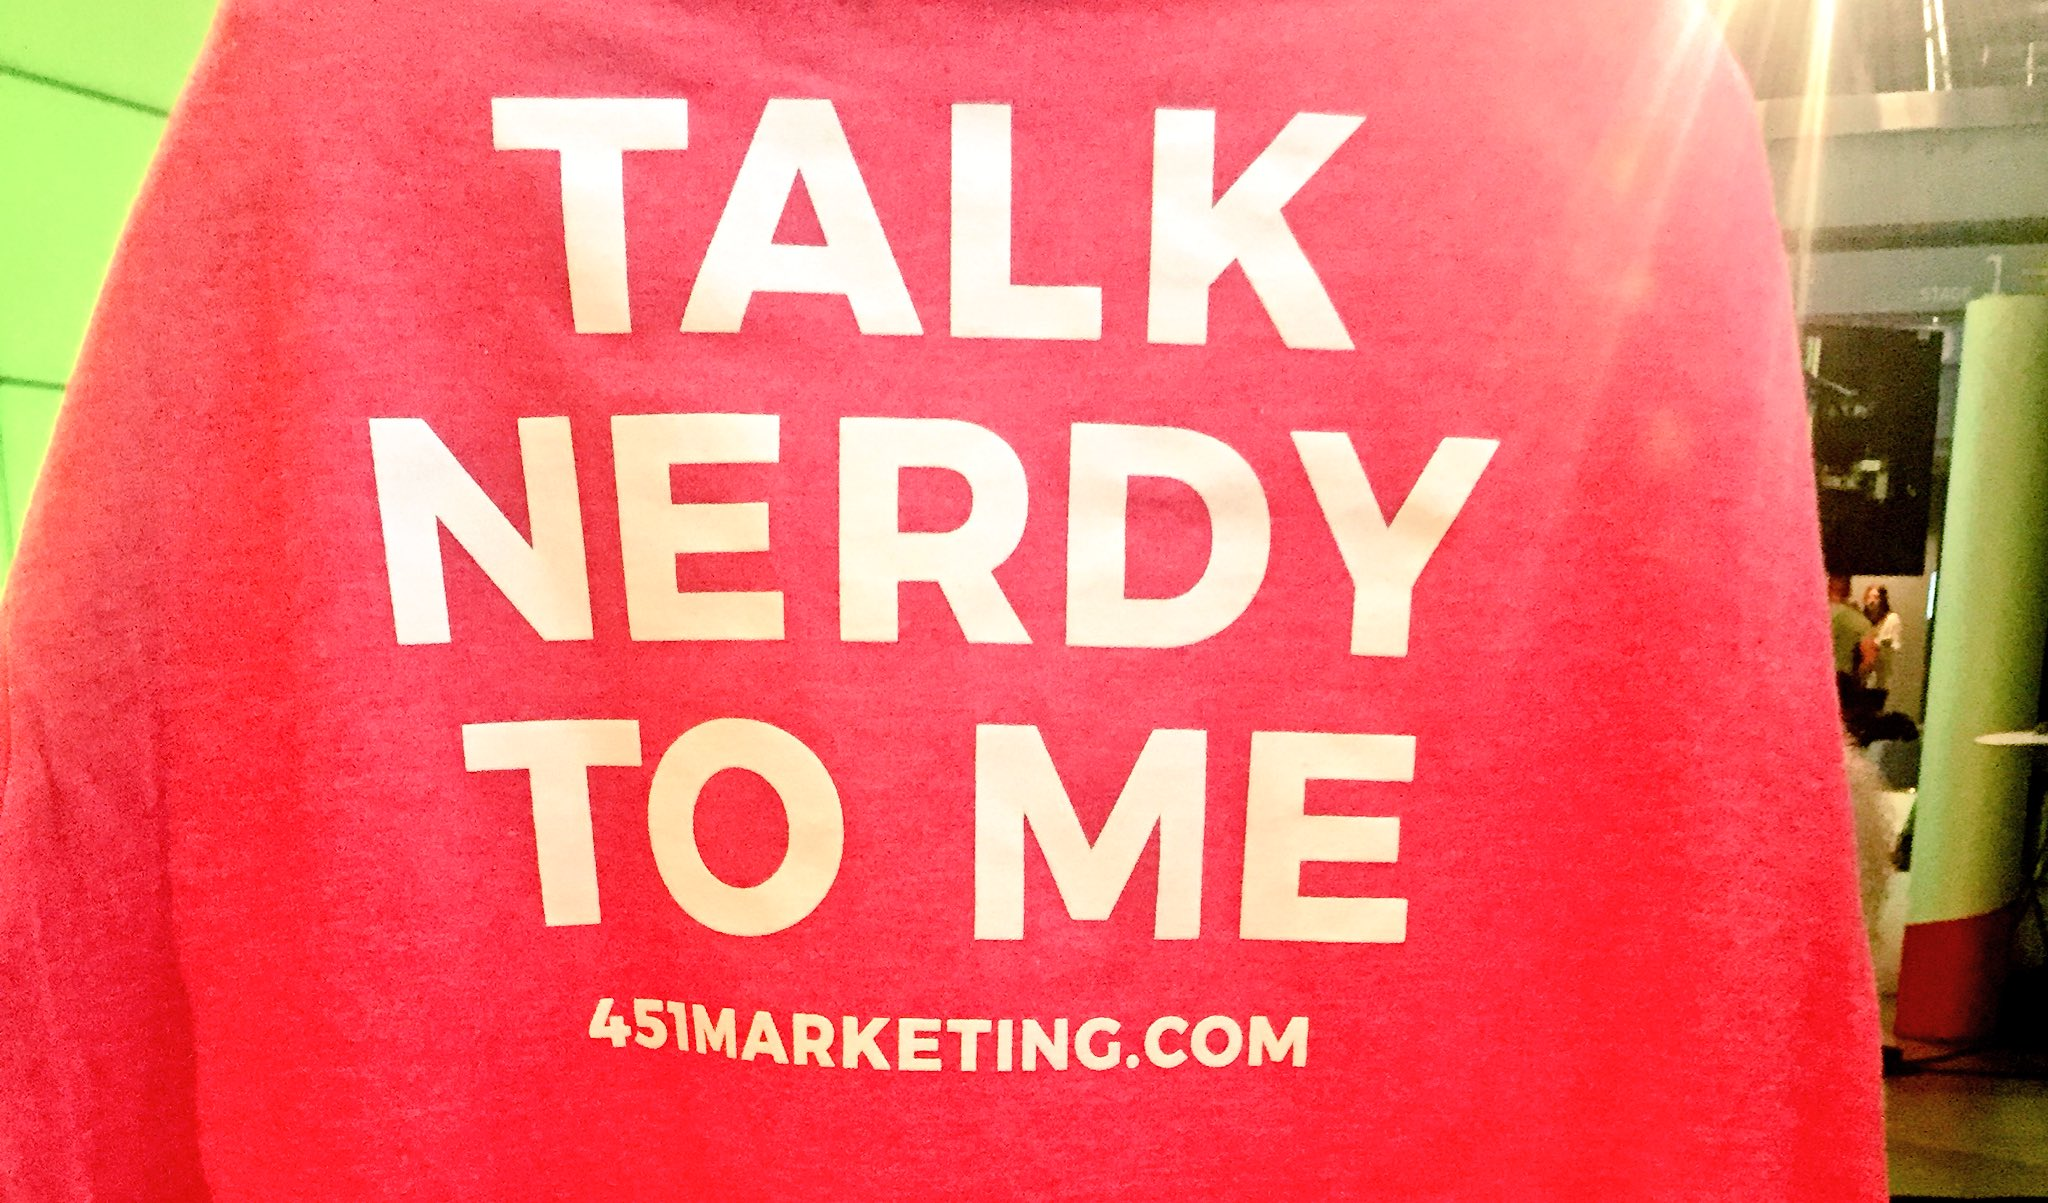 CALLING ALL GEEKS. Come check us out today #C3NY & tell us your best nerdy pick up line https://t.co/RAfyWdd894